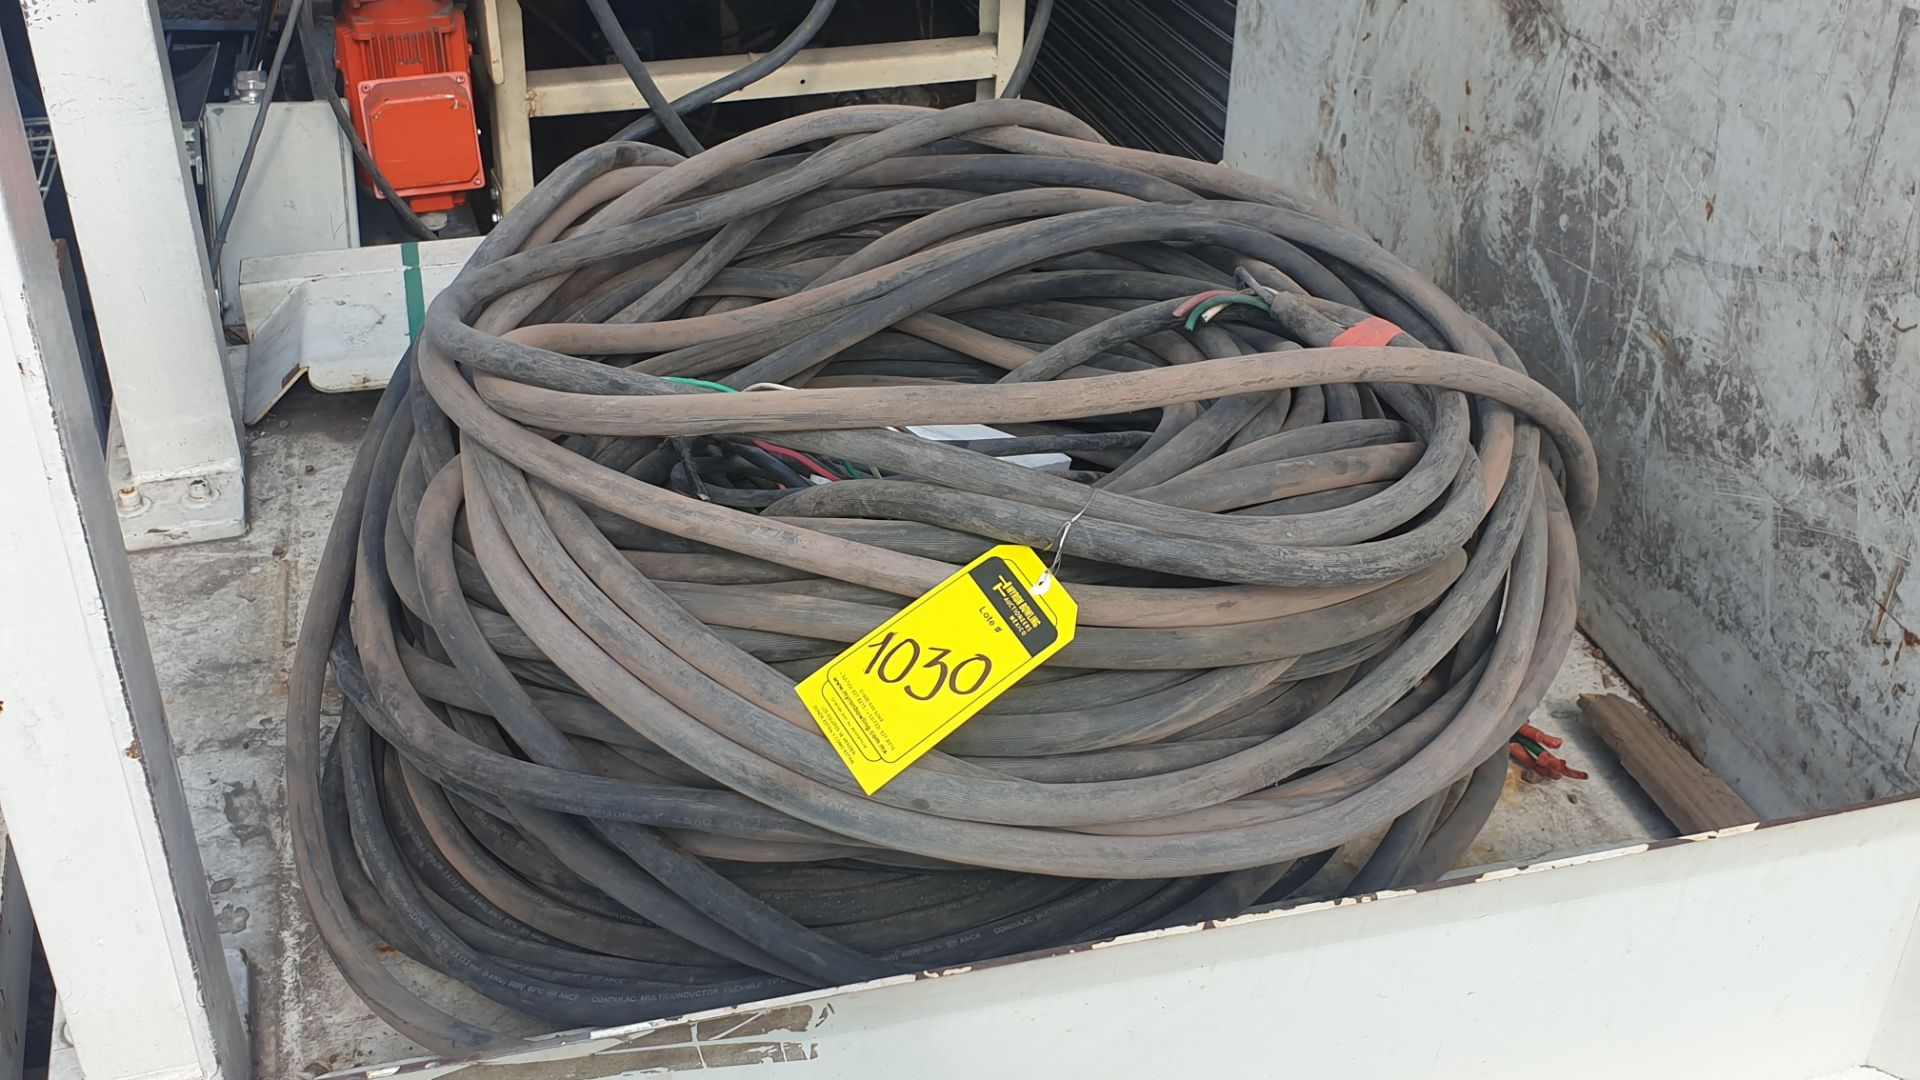 Lot of cable for high tension of 3 lines different gauge 80 mts approximately - Image 6 of 6